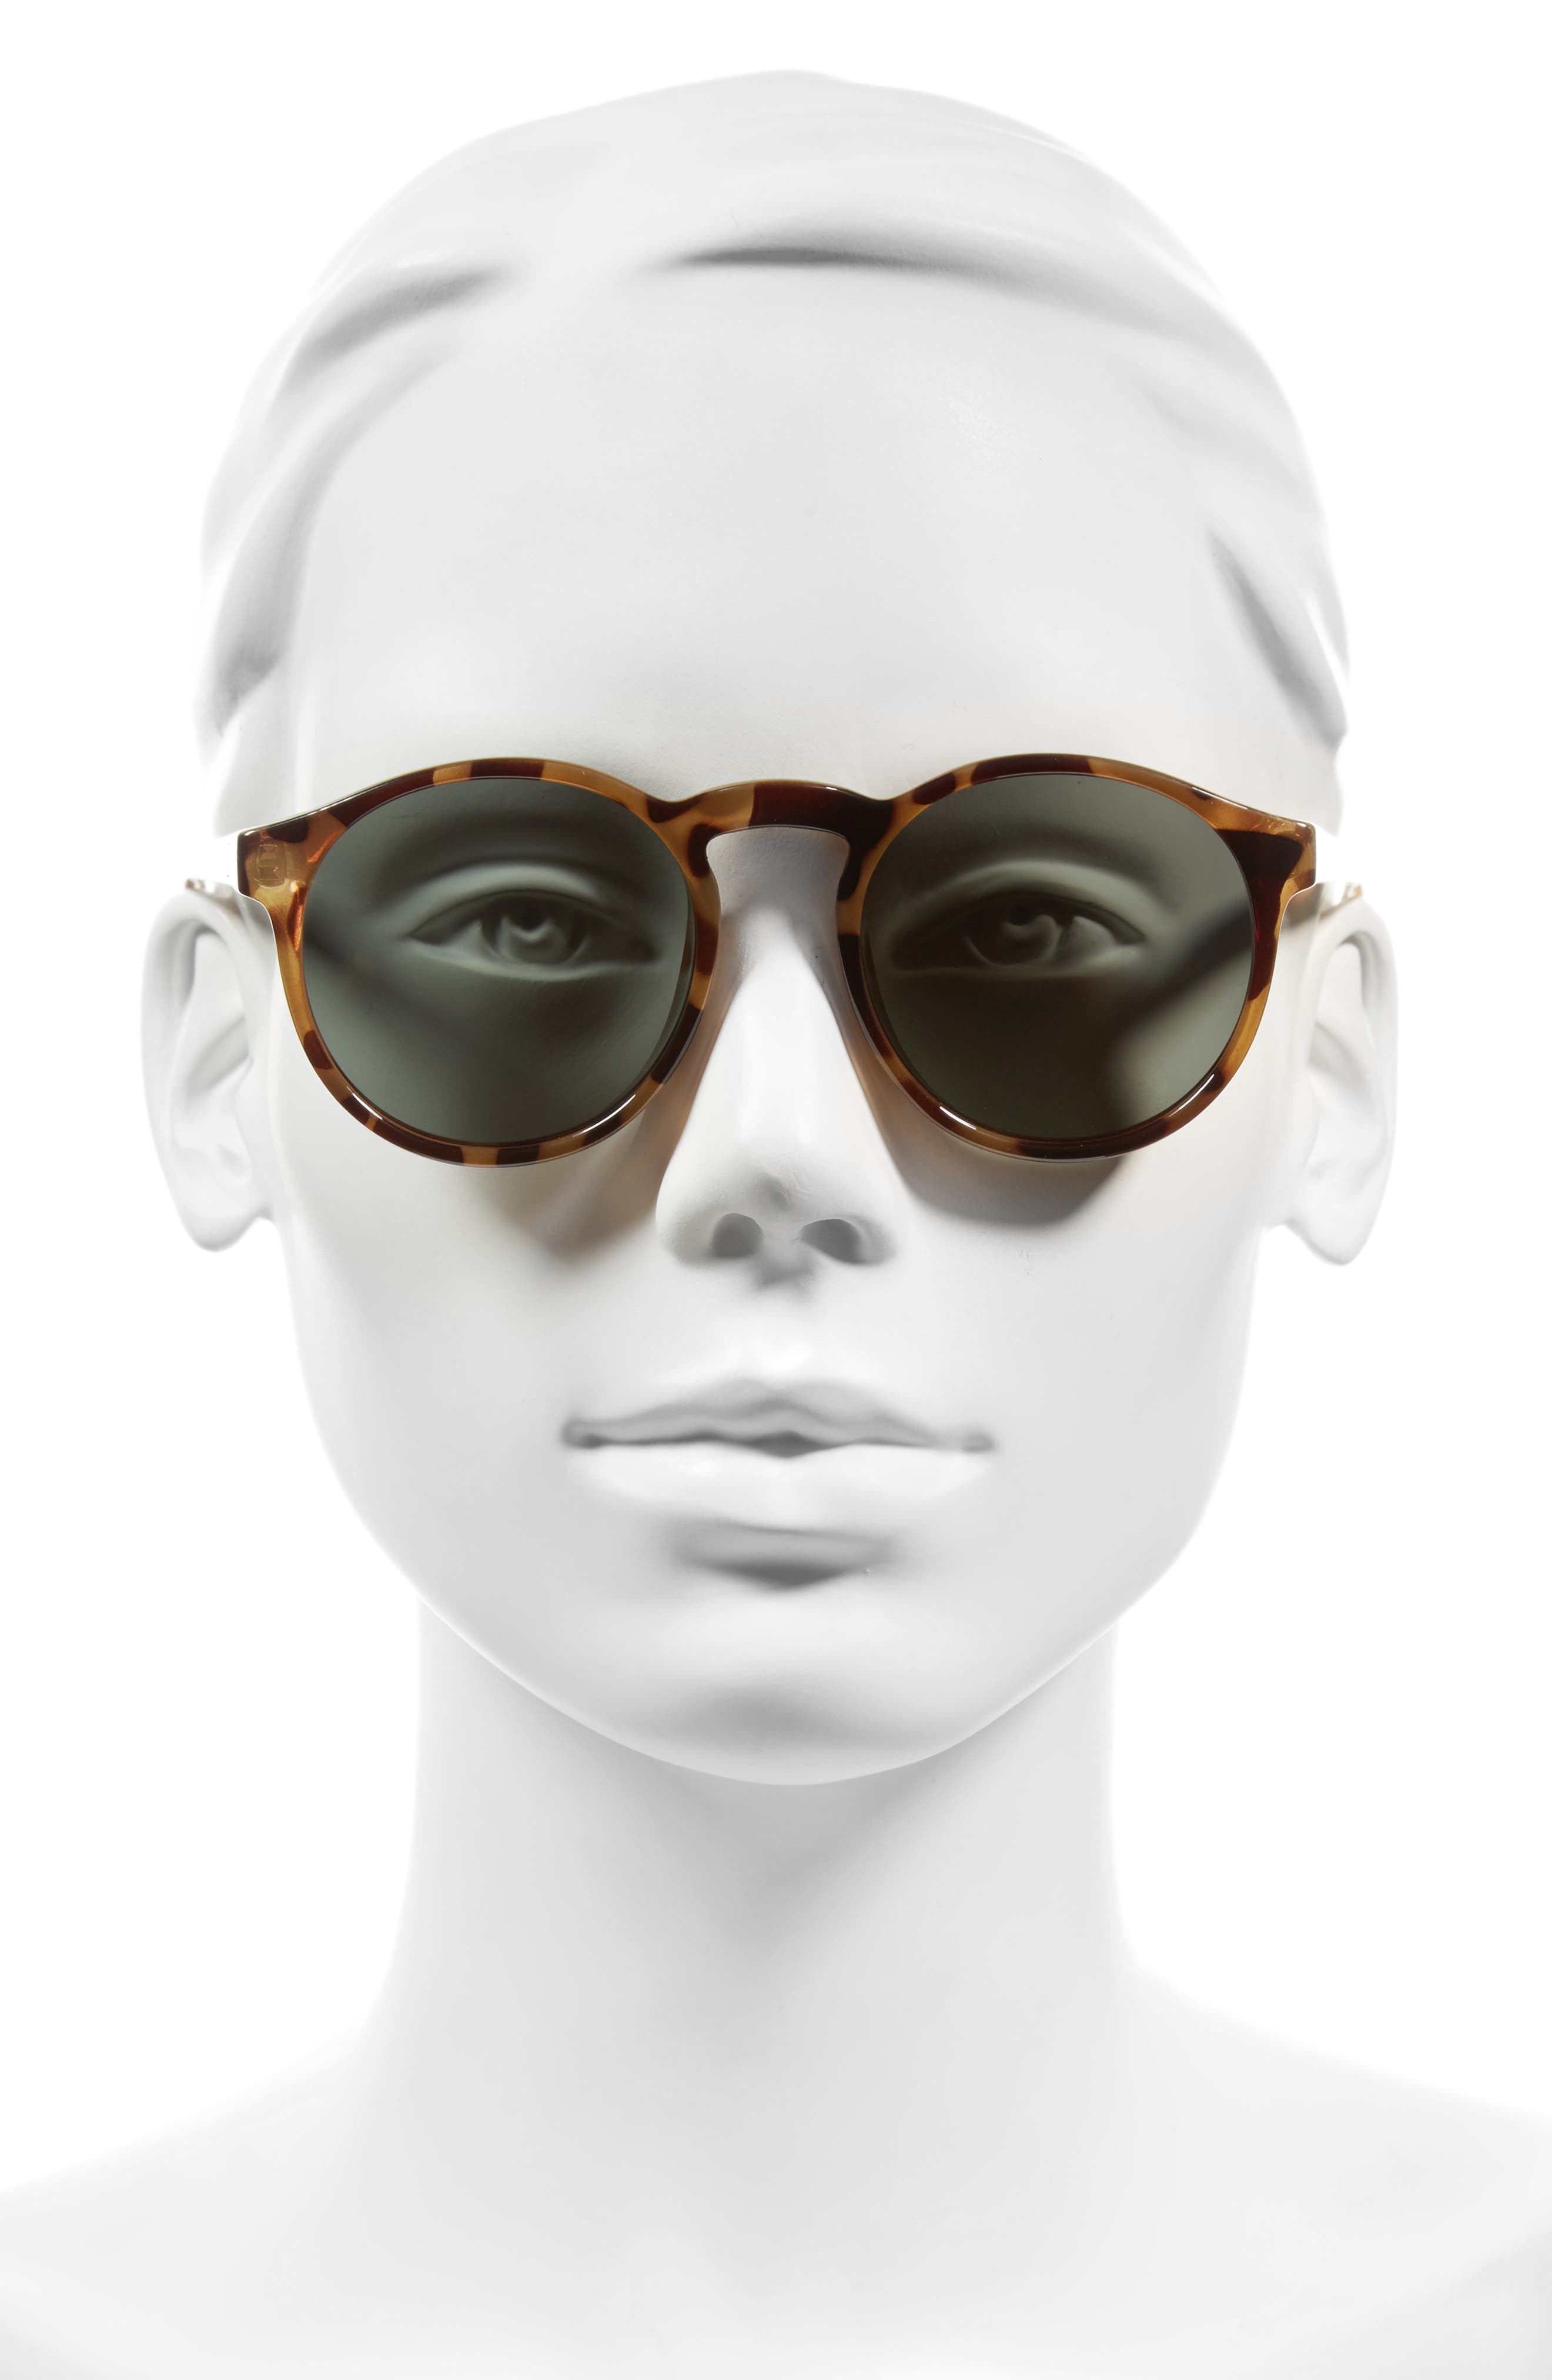 Cubanos 47mm Round Sunglasses,                             Alternate thumbnail 2, color,                             Milky Tortoise